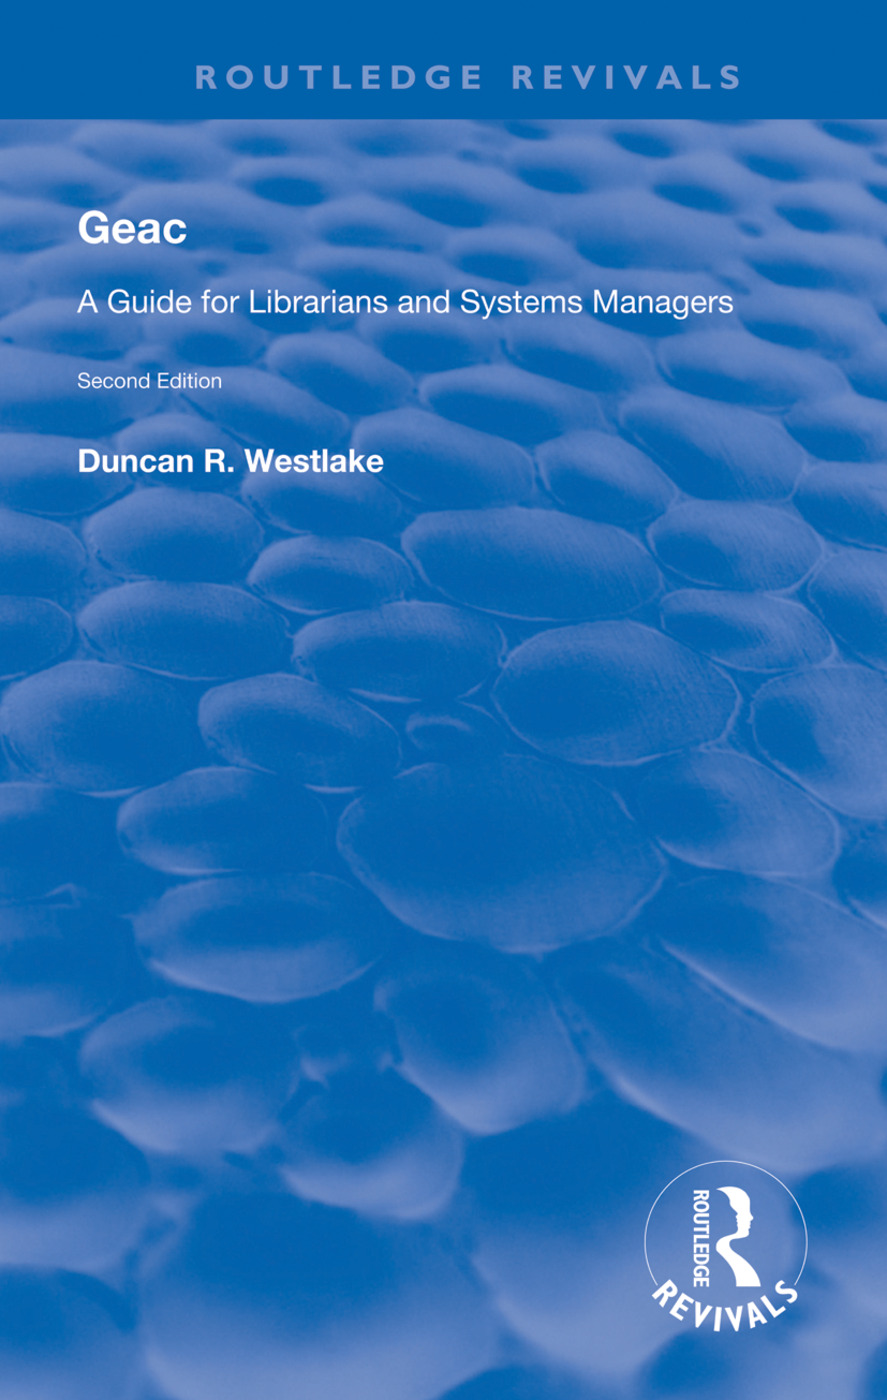 Geac: A Guide for Librarians and Systems Managers